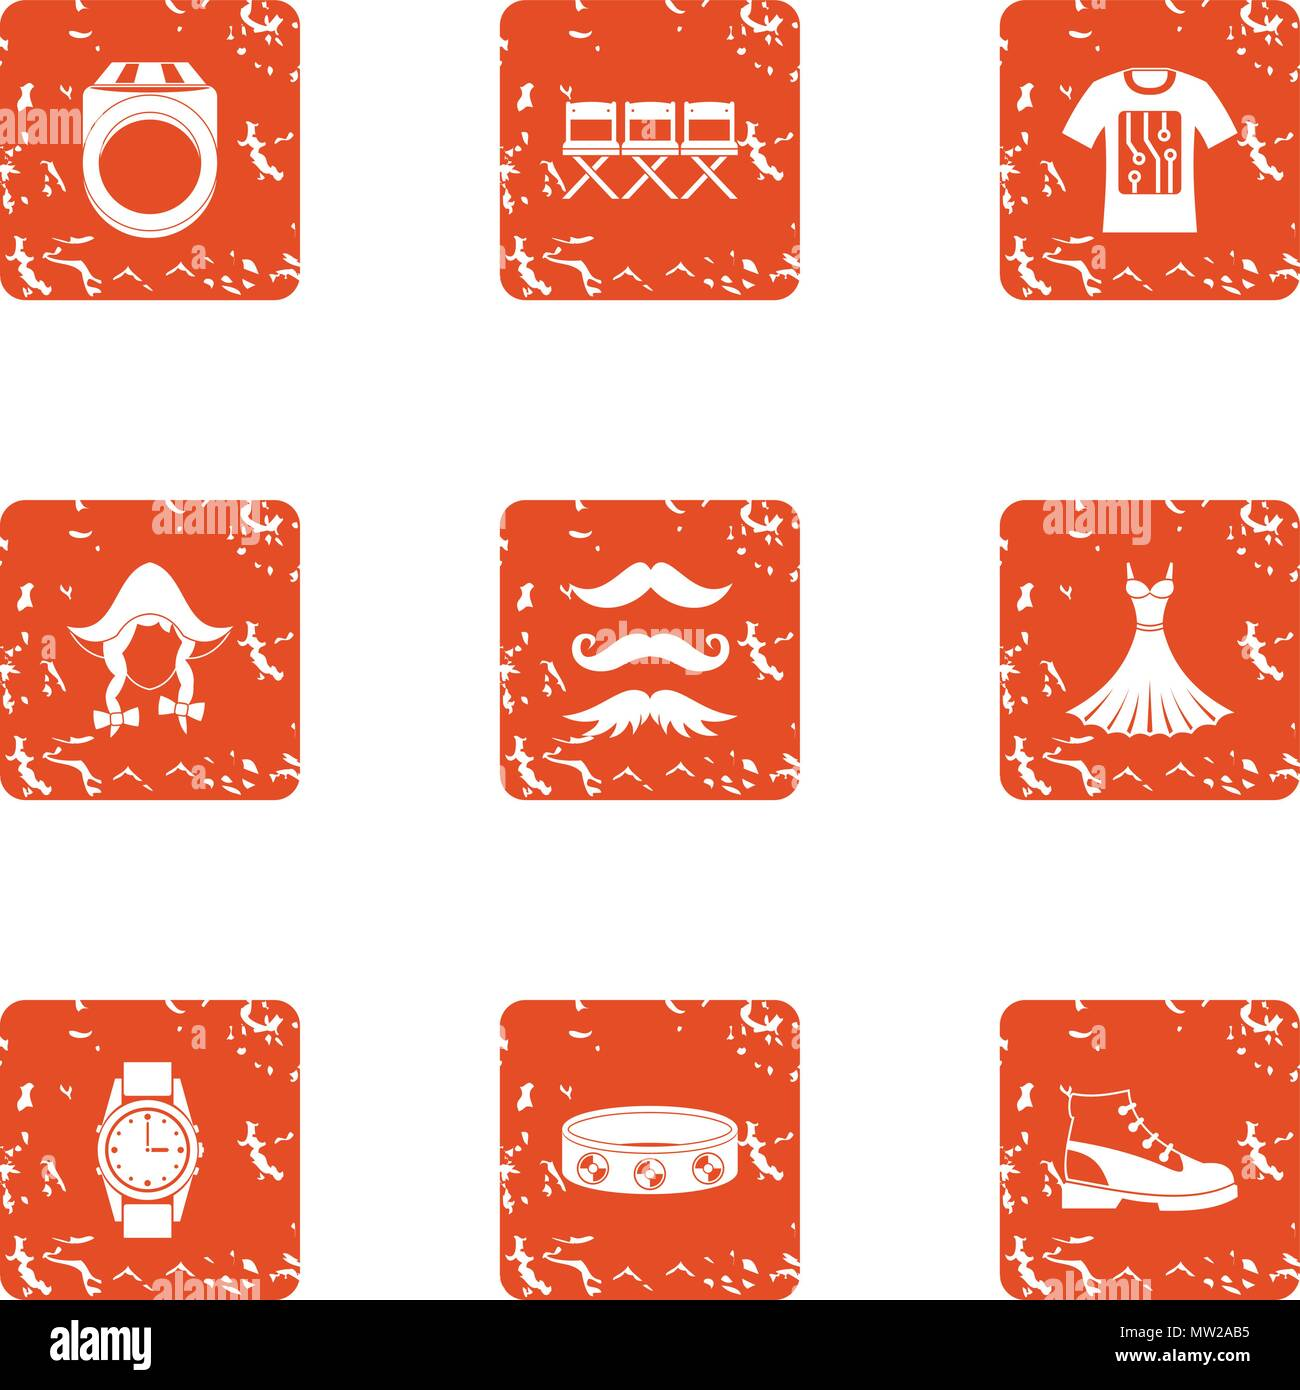 Contemporary person icons set, grunge style Stock Vector